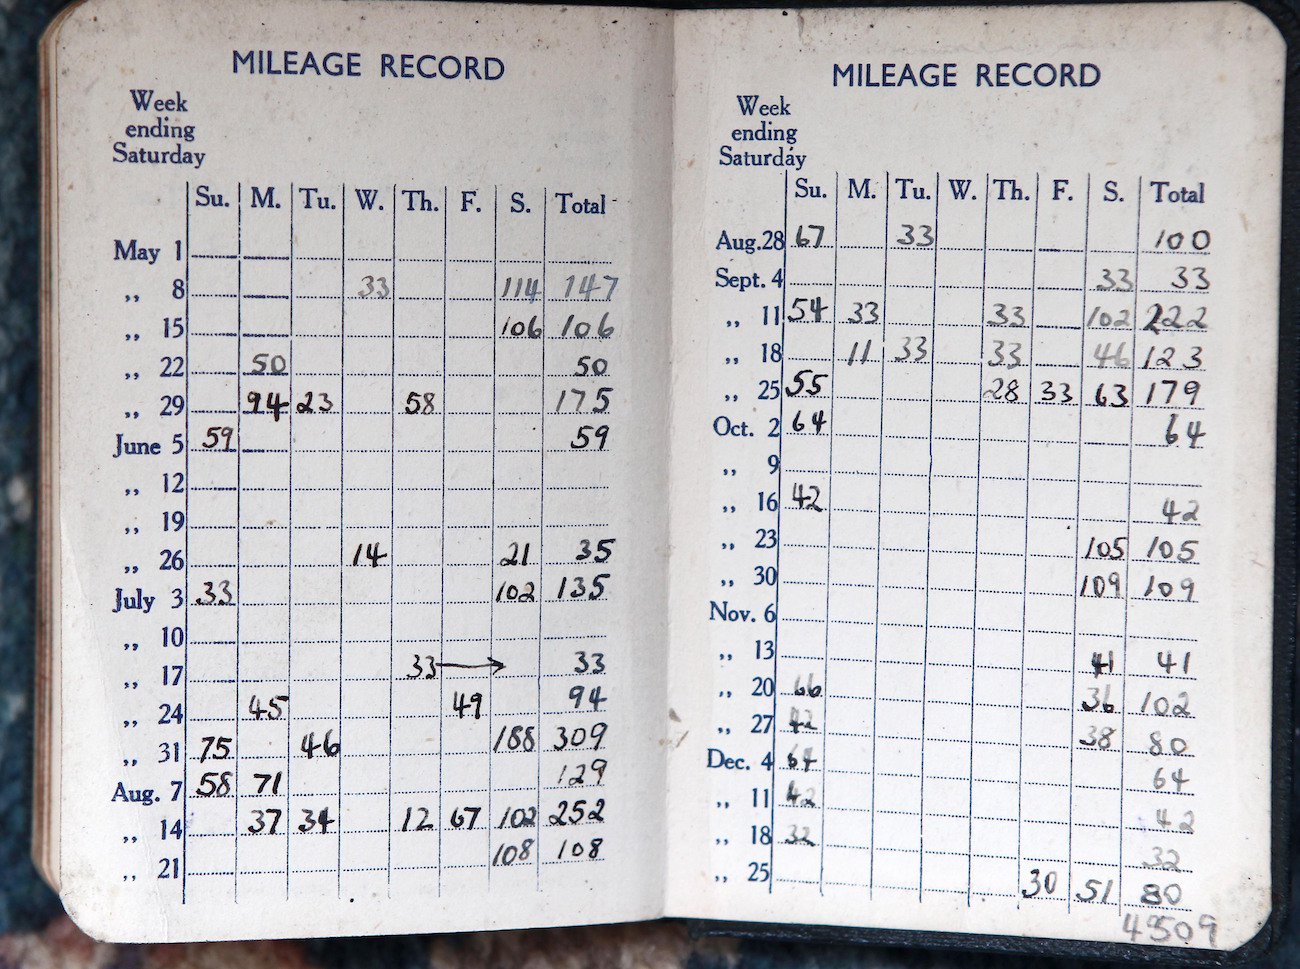 Mileage Spreadsheet For Taxes Spreadshee Mileage Spreadsheet For Taxes Mileage